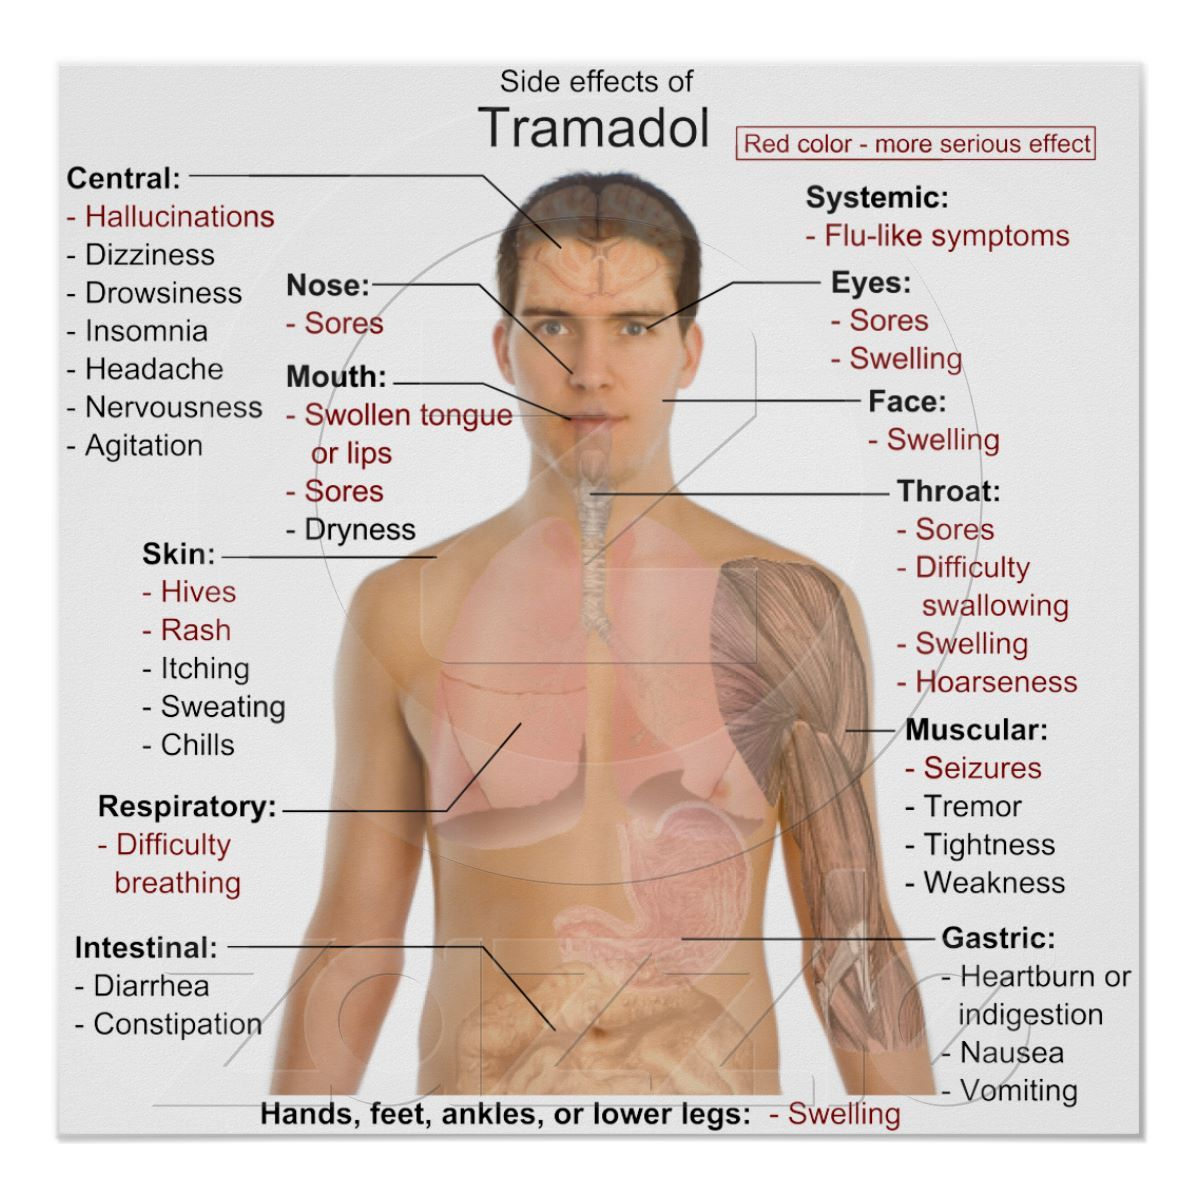 tramadol vs hydrocodone opioids drugs for pain